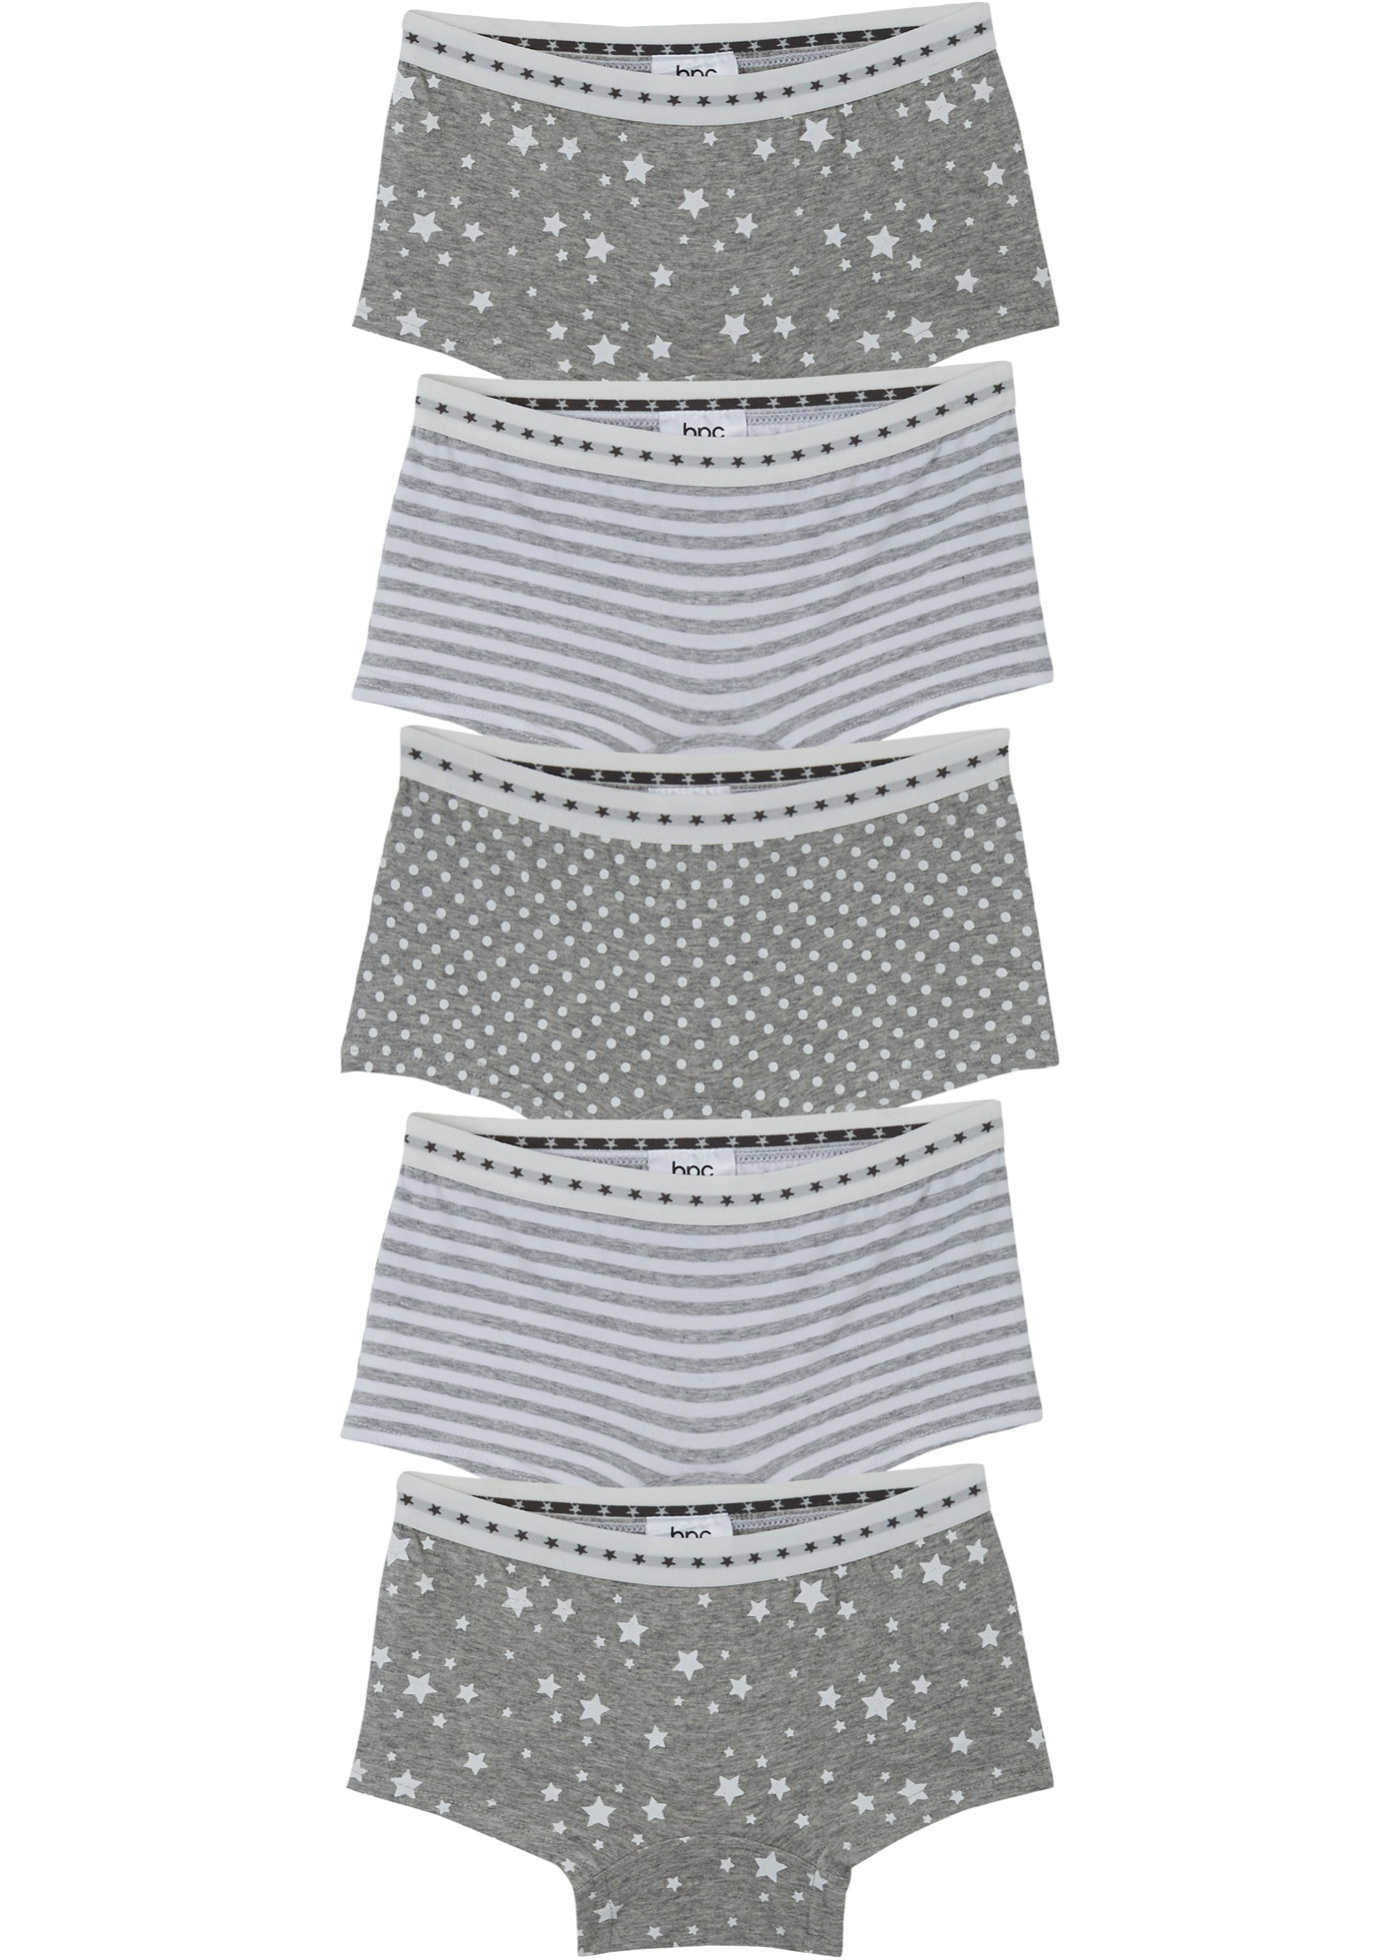 Panty (5-pack)